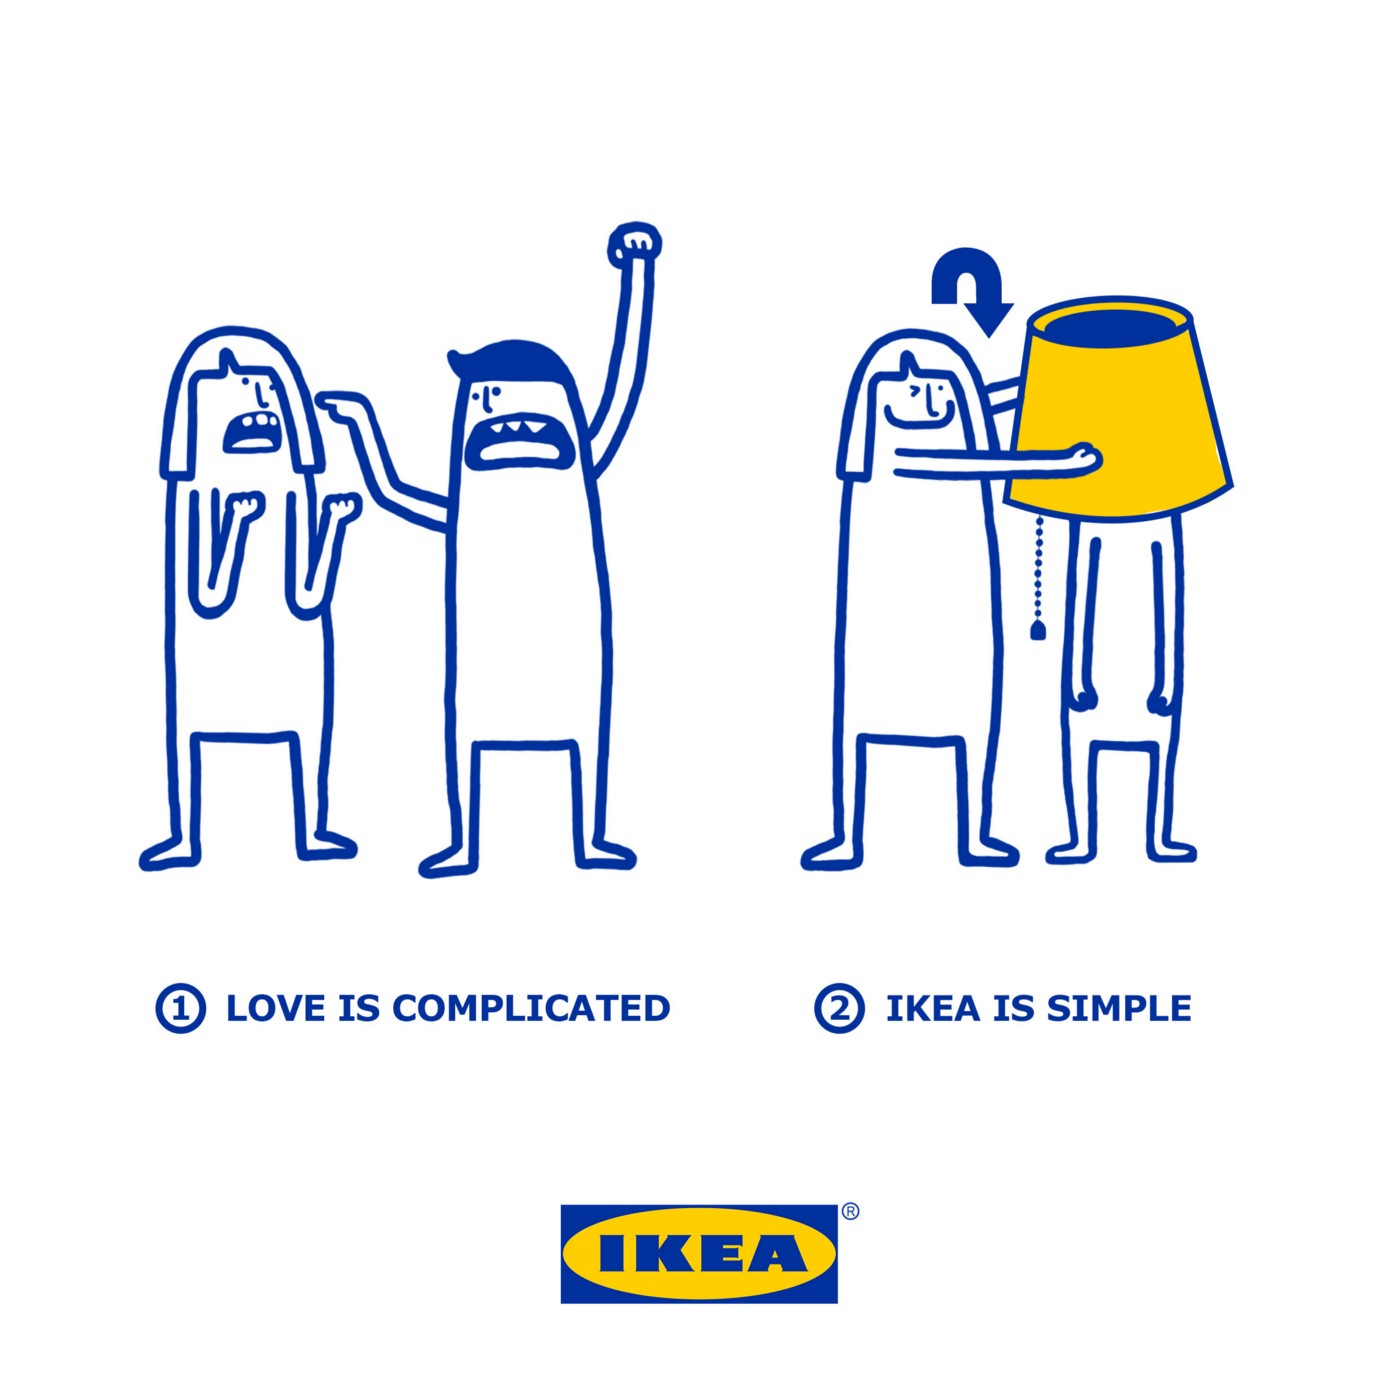 Love is complicated, IKEA is simple.